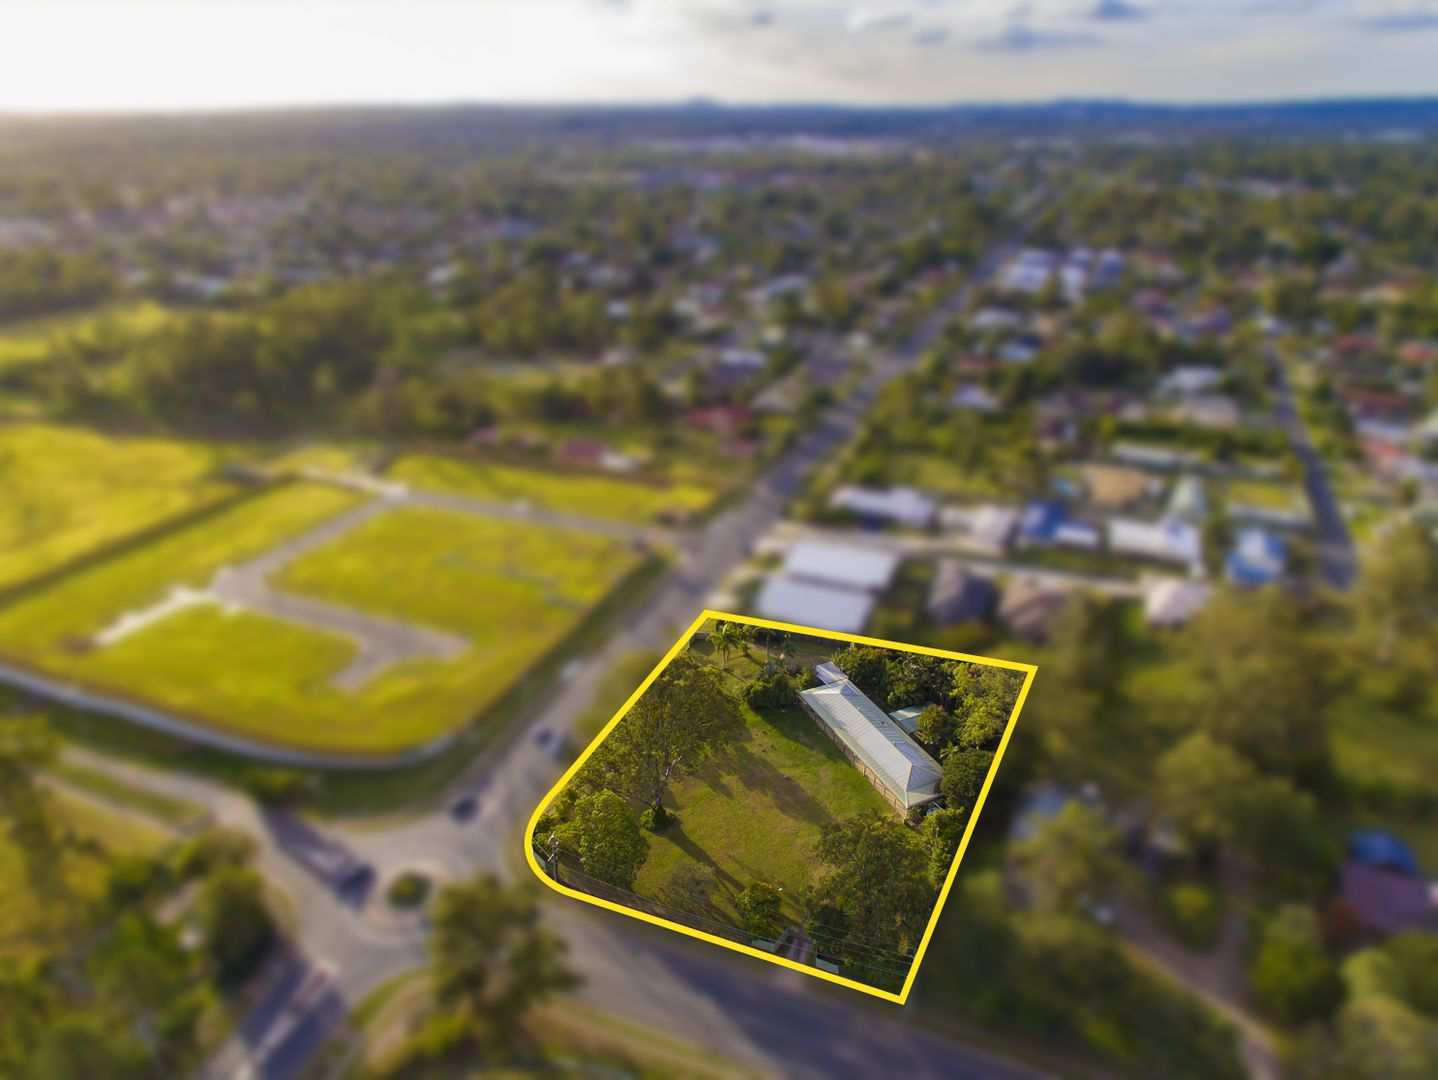 83-87 Beutel Street, Waterford West QLD 4133, Image 0